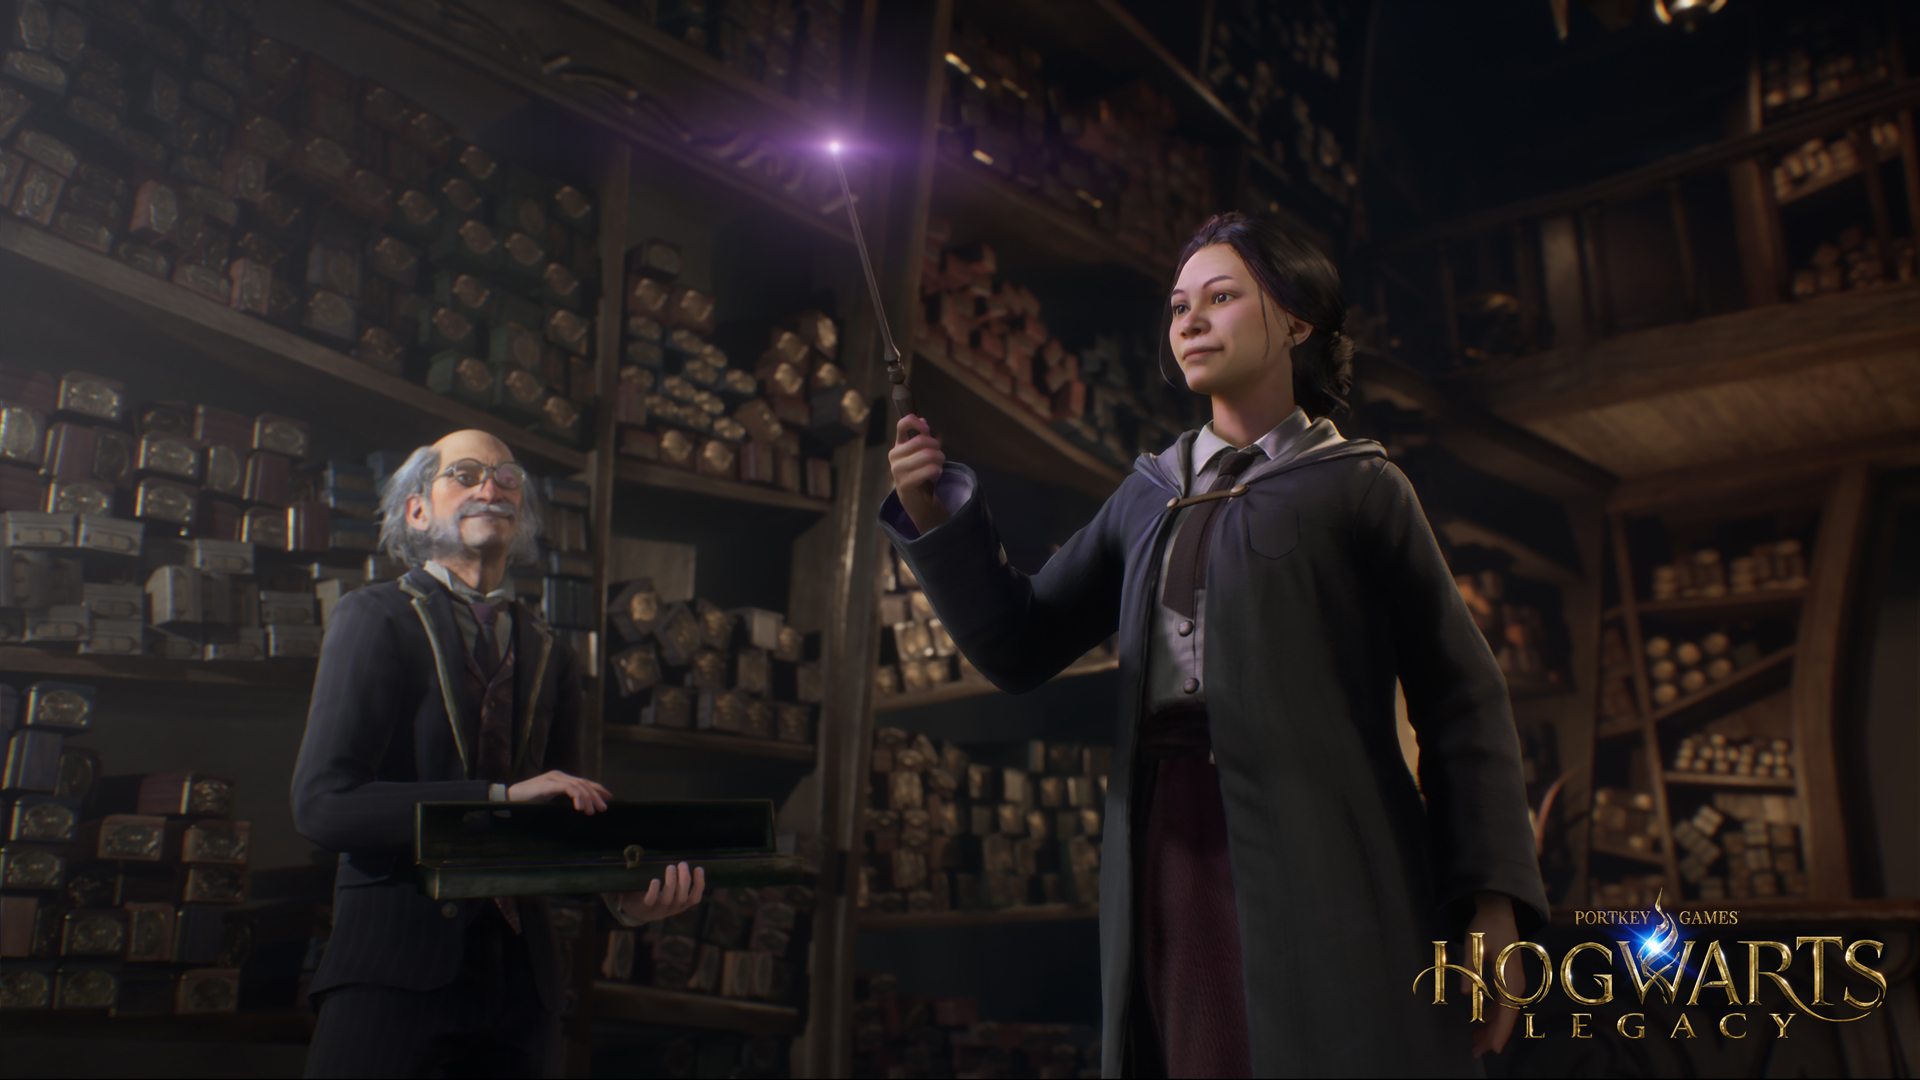 Действия Hogwarts Legacy развернутся задолго по рождения Гарри Поттера / фото Avalanche Software